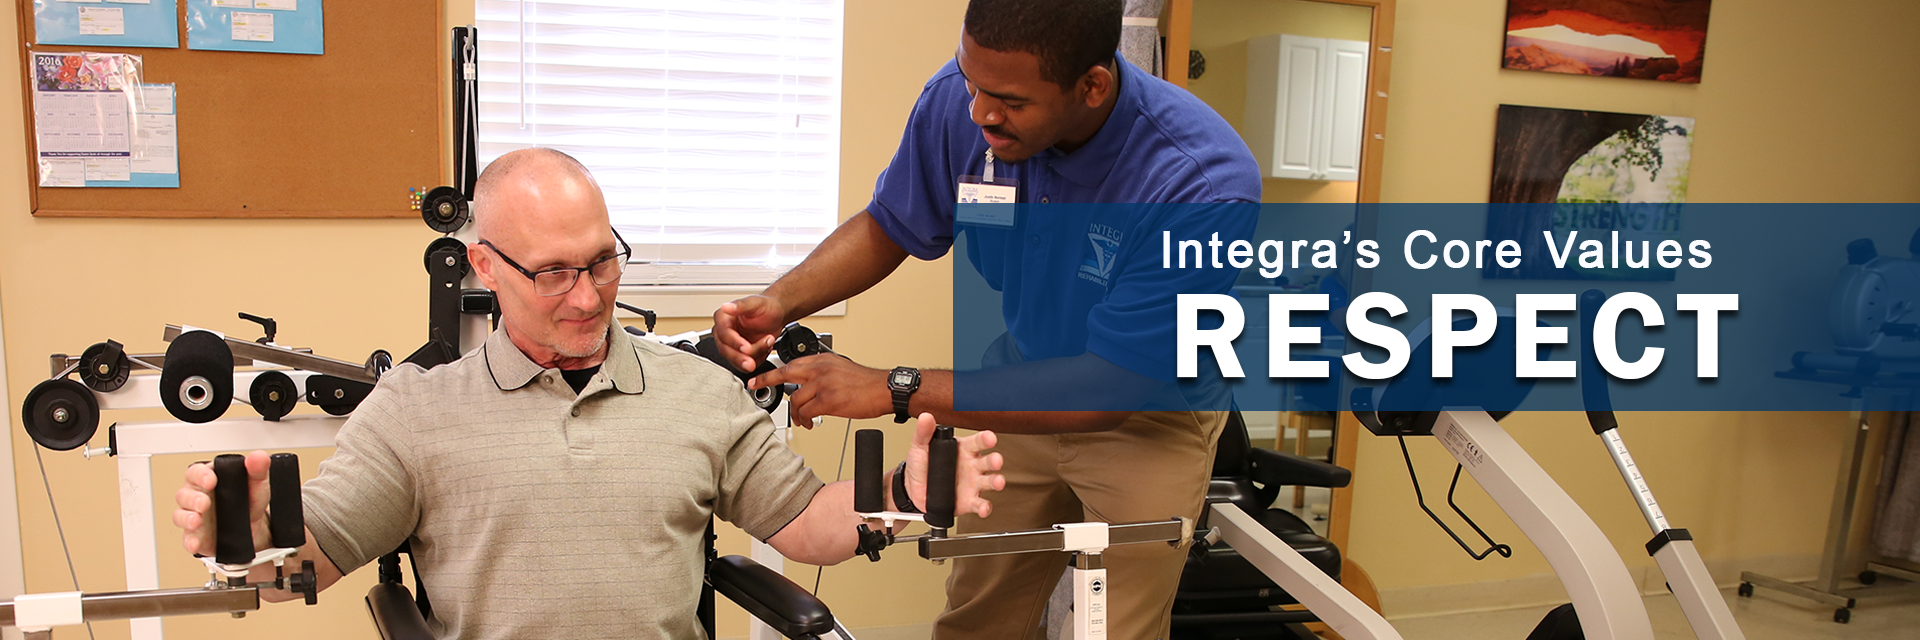 integra associate performing physical therapy with patient. Core Value Respect